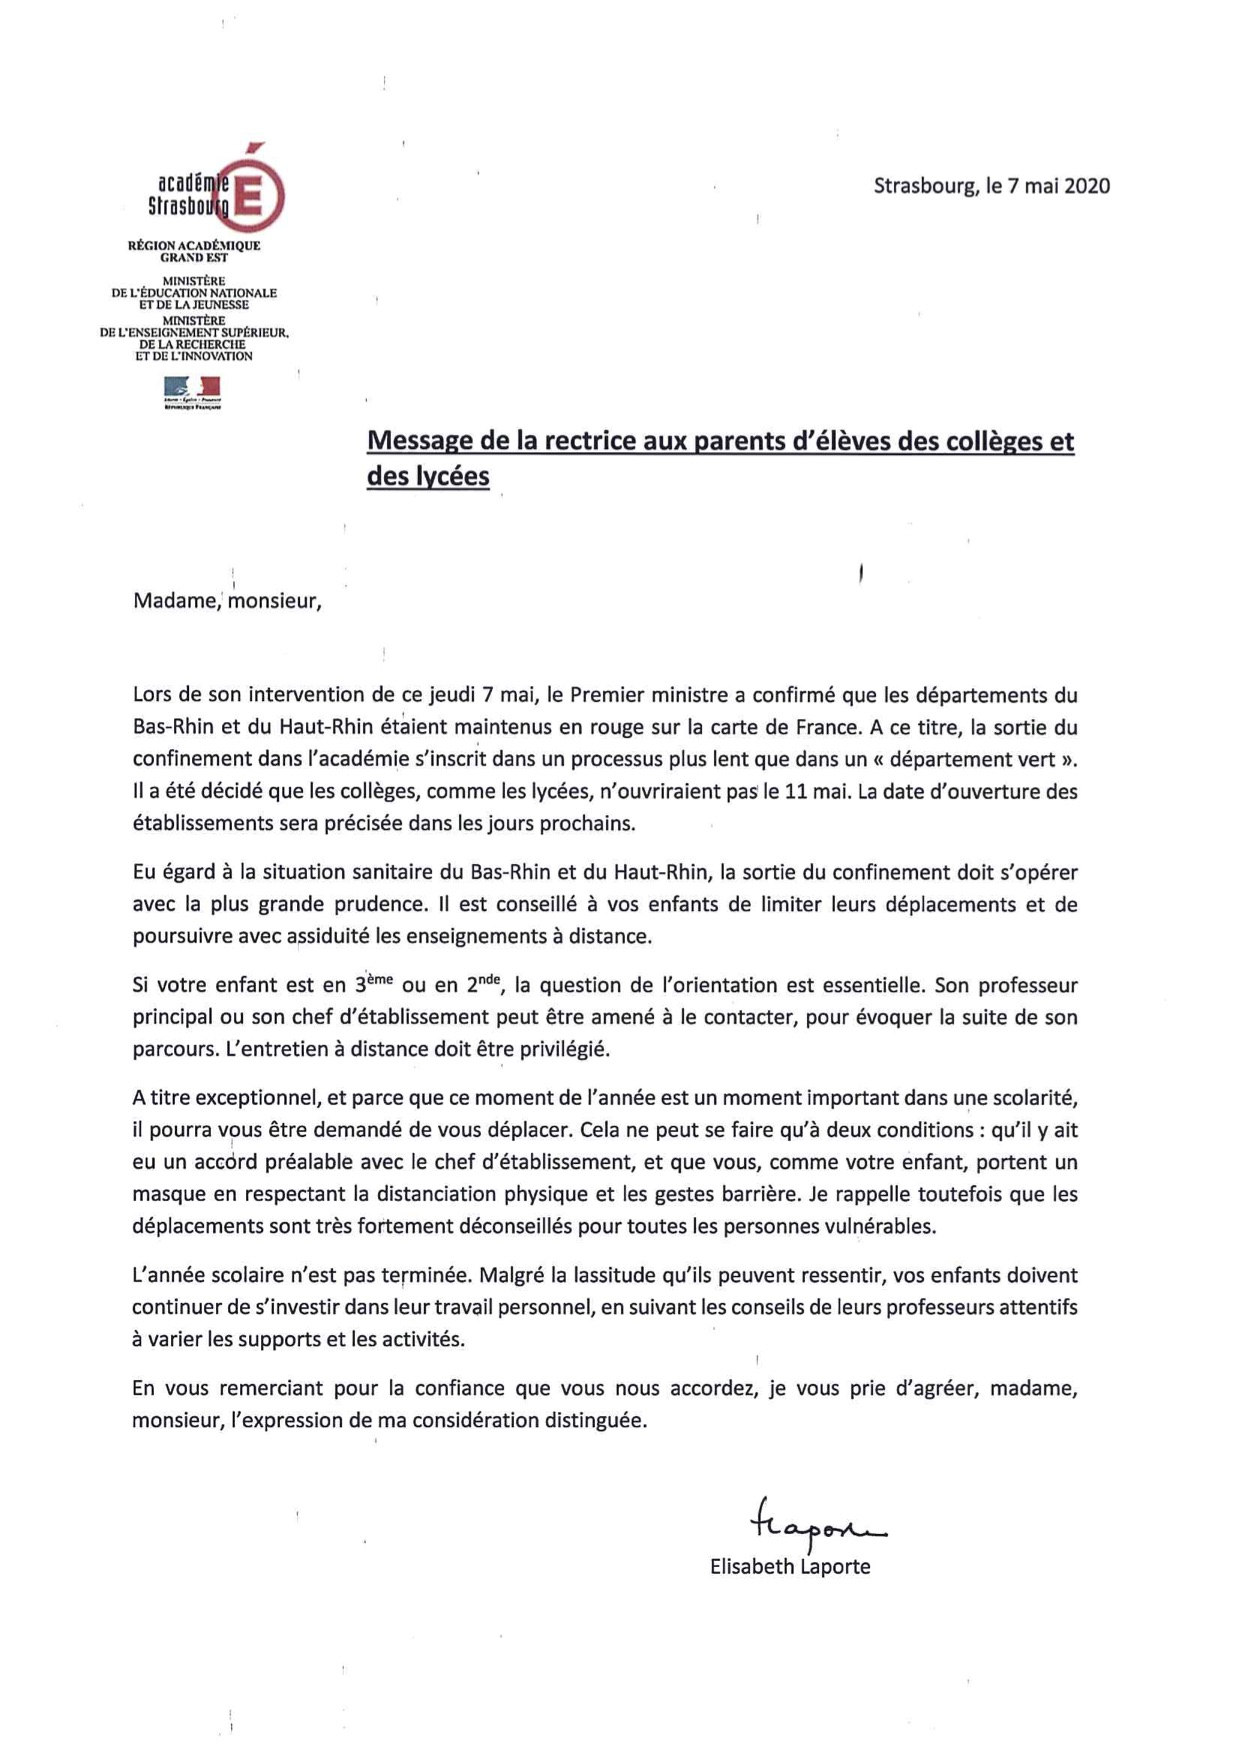 Courrier Rectrice 7 mai 2020